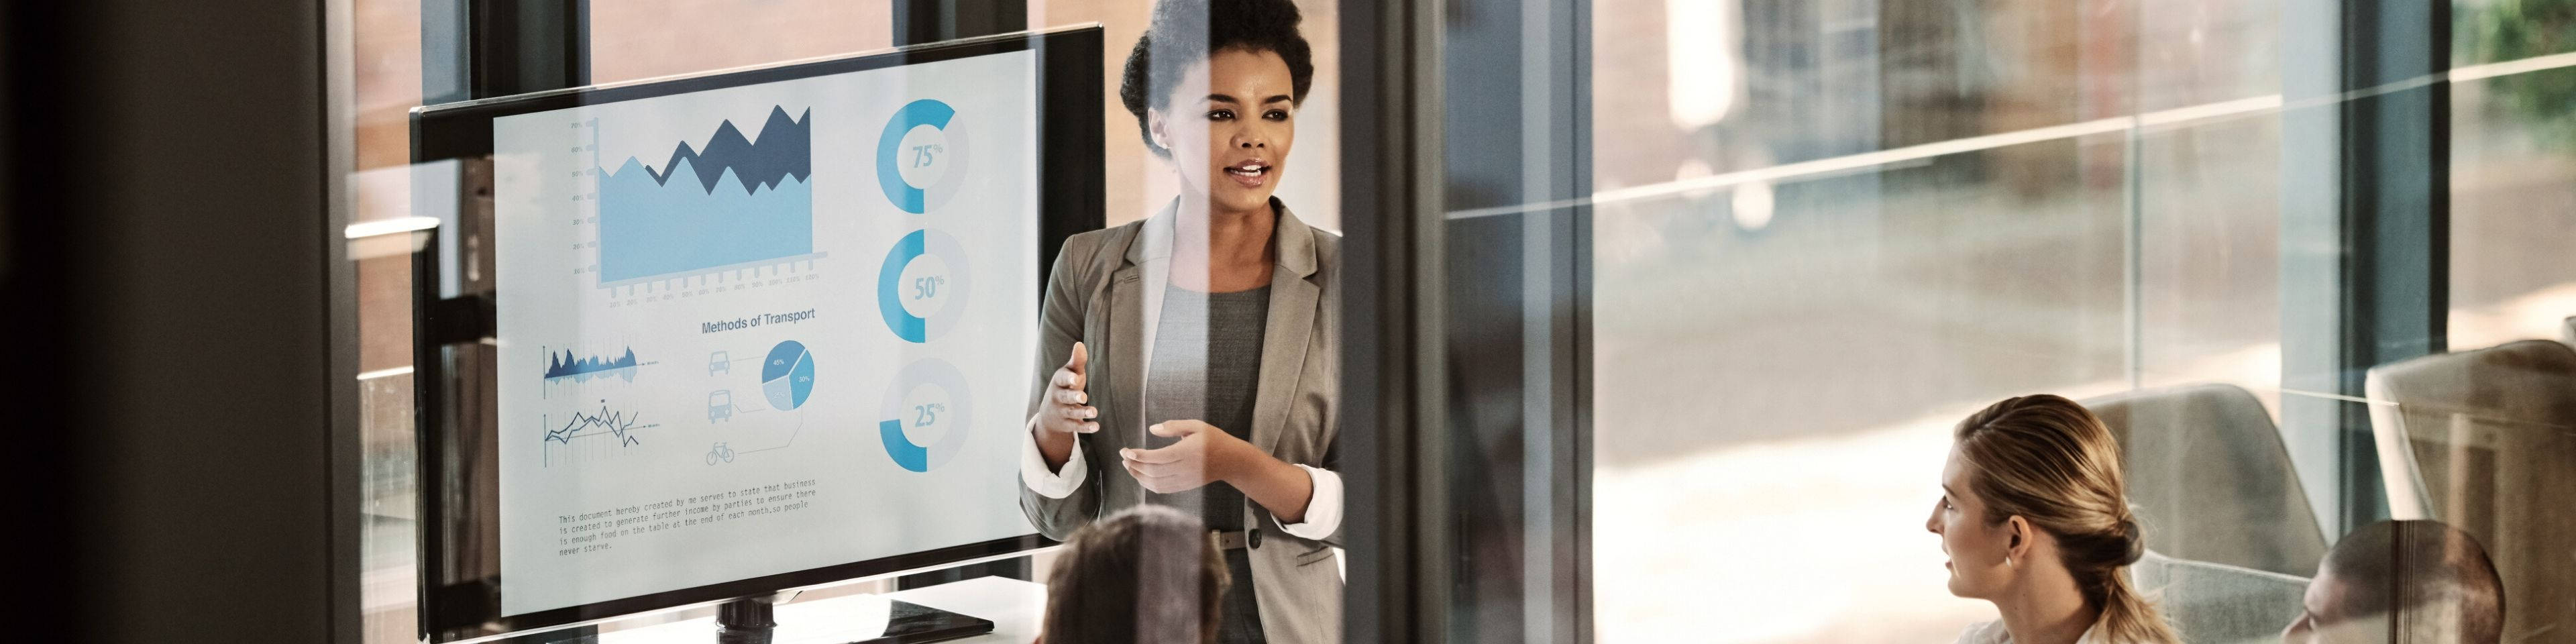 business woman in meeting presenting charts